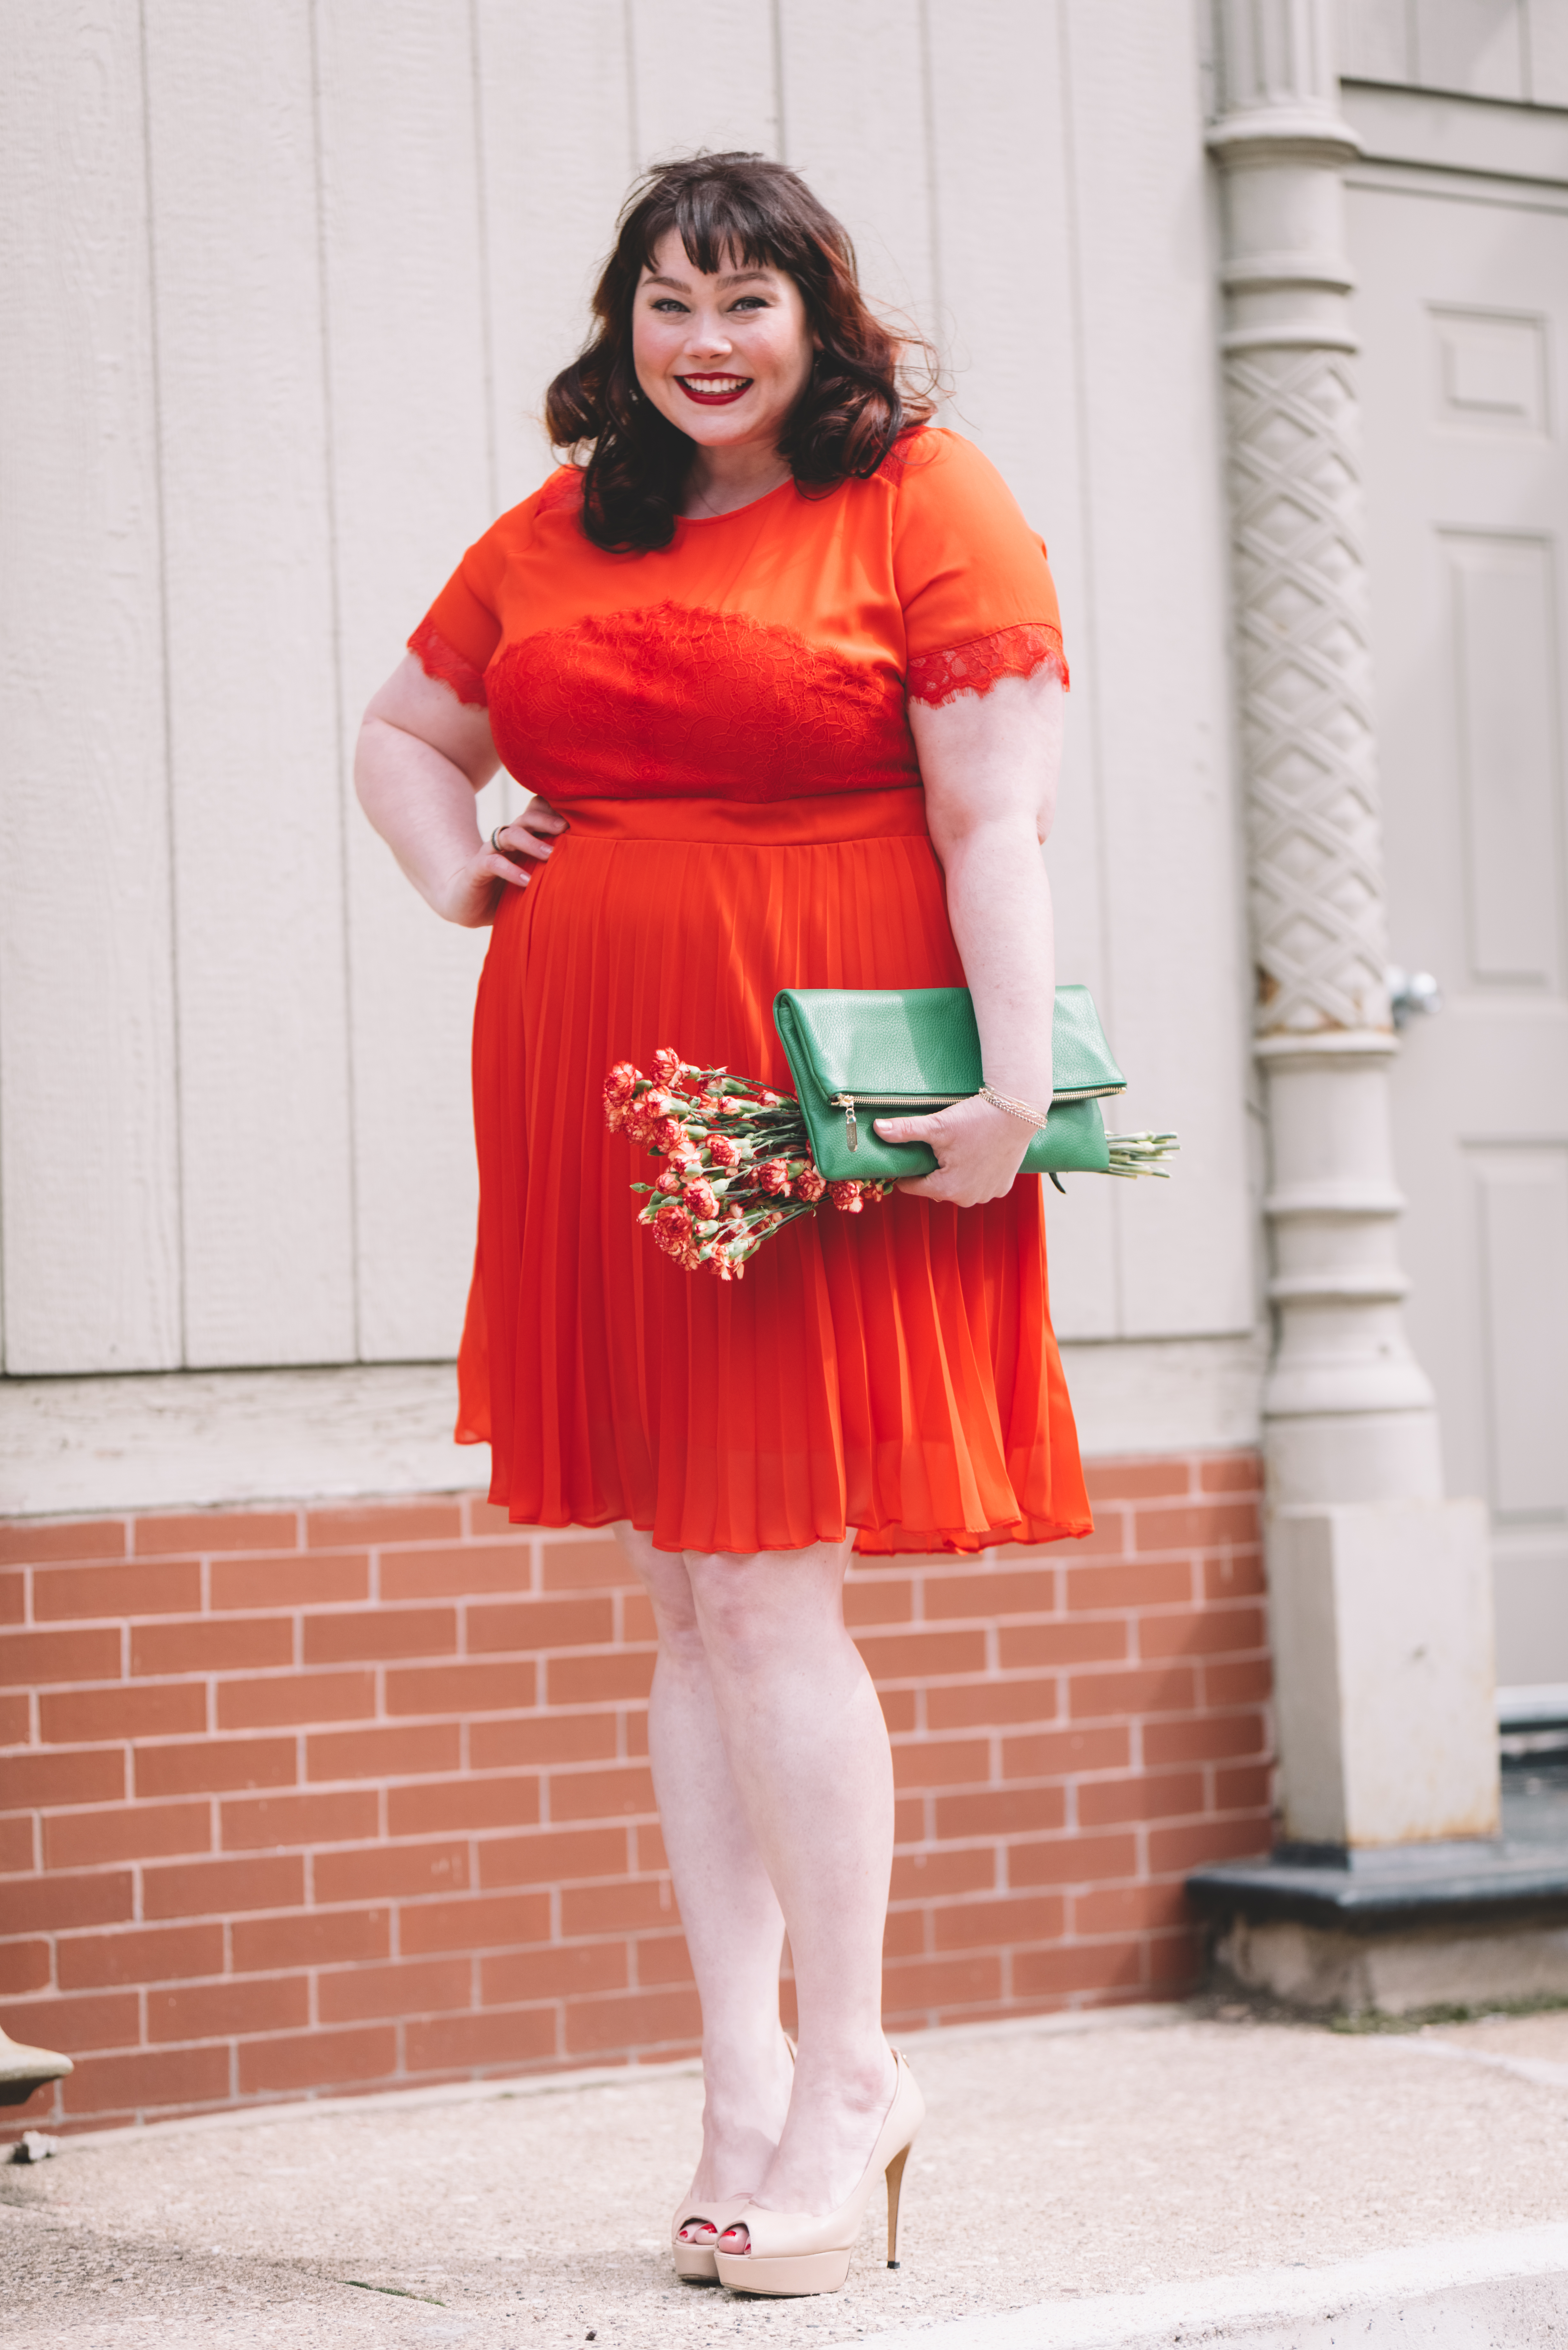 Plus Size Blogger with Custom Leather Bag from Laudi Vidni in Chicago